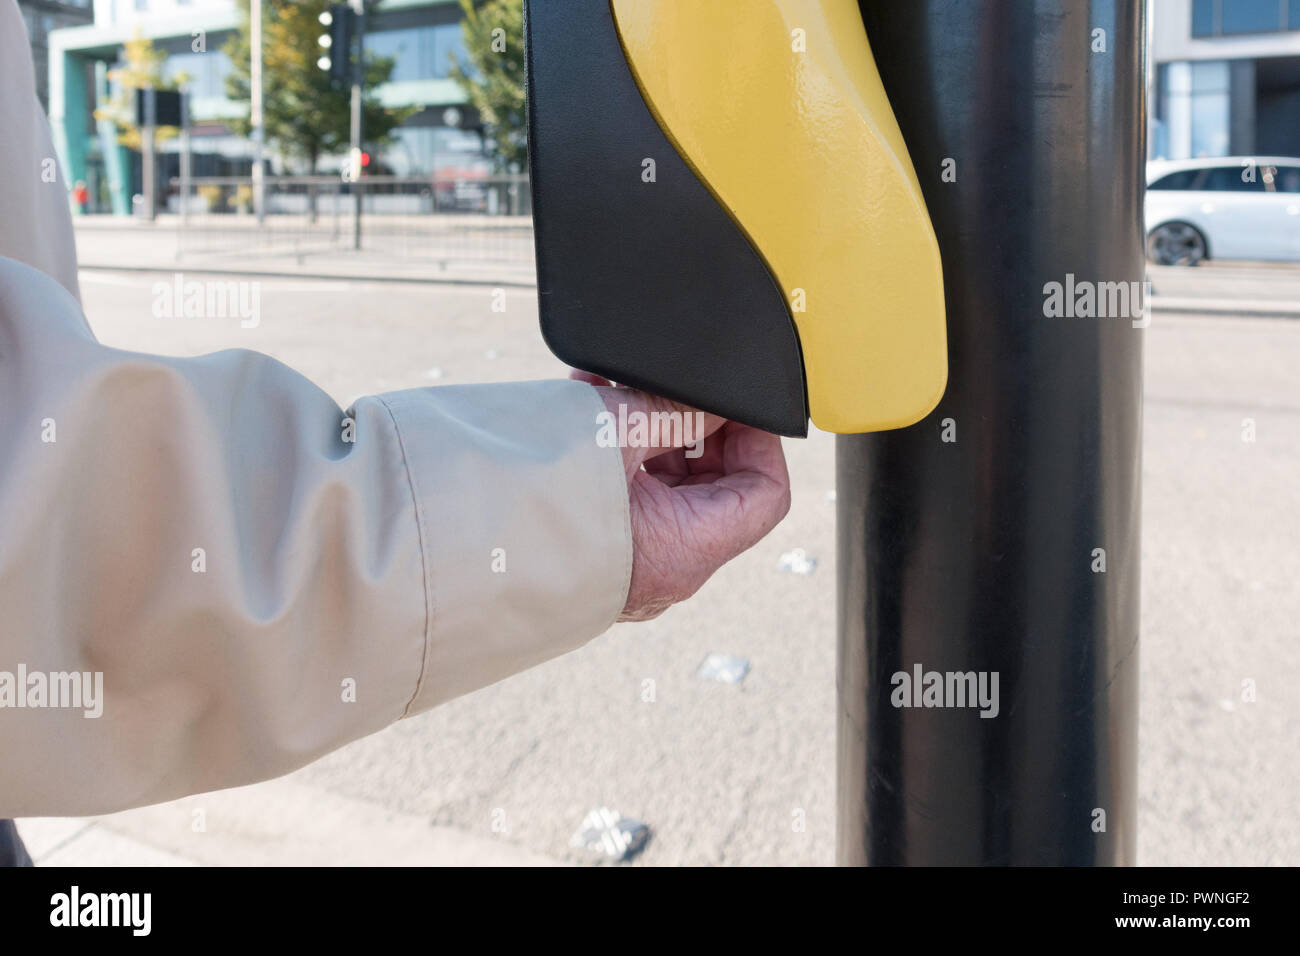 visually impaired blind elderly man using pedestrian road crossing rotating cone aid on underside of push button control box, Dundee, Scotland, UK - Stock Image